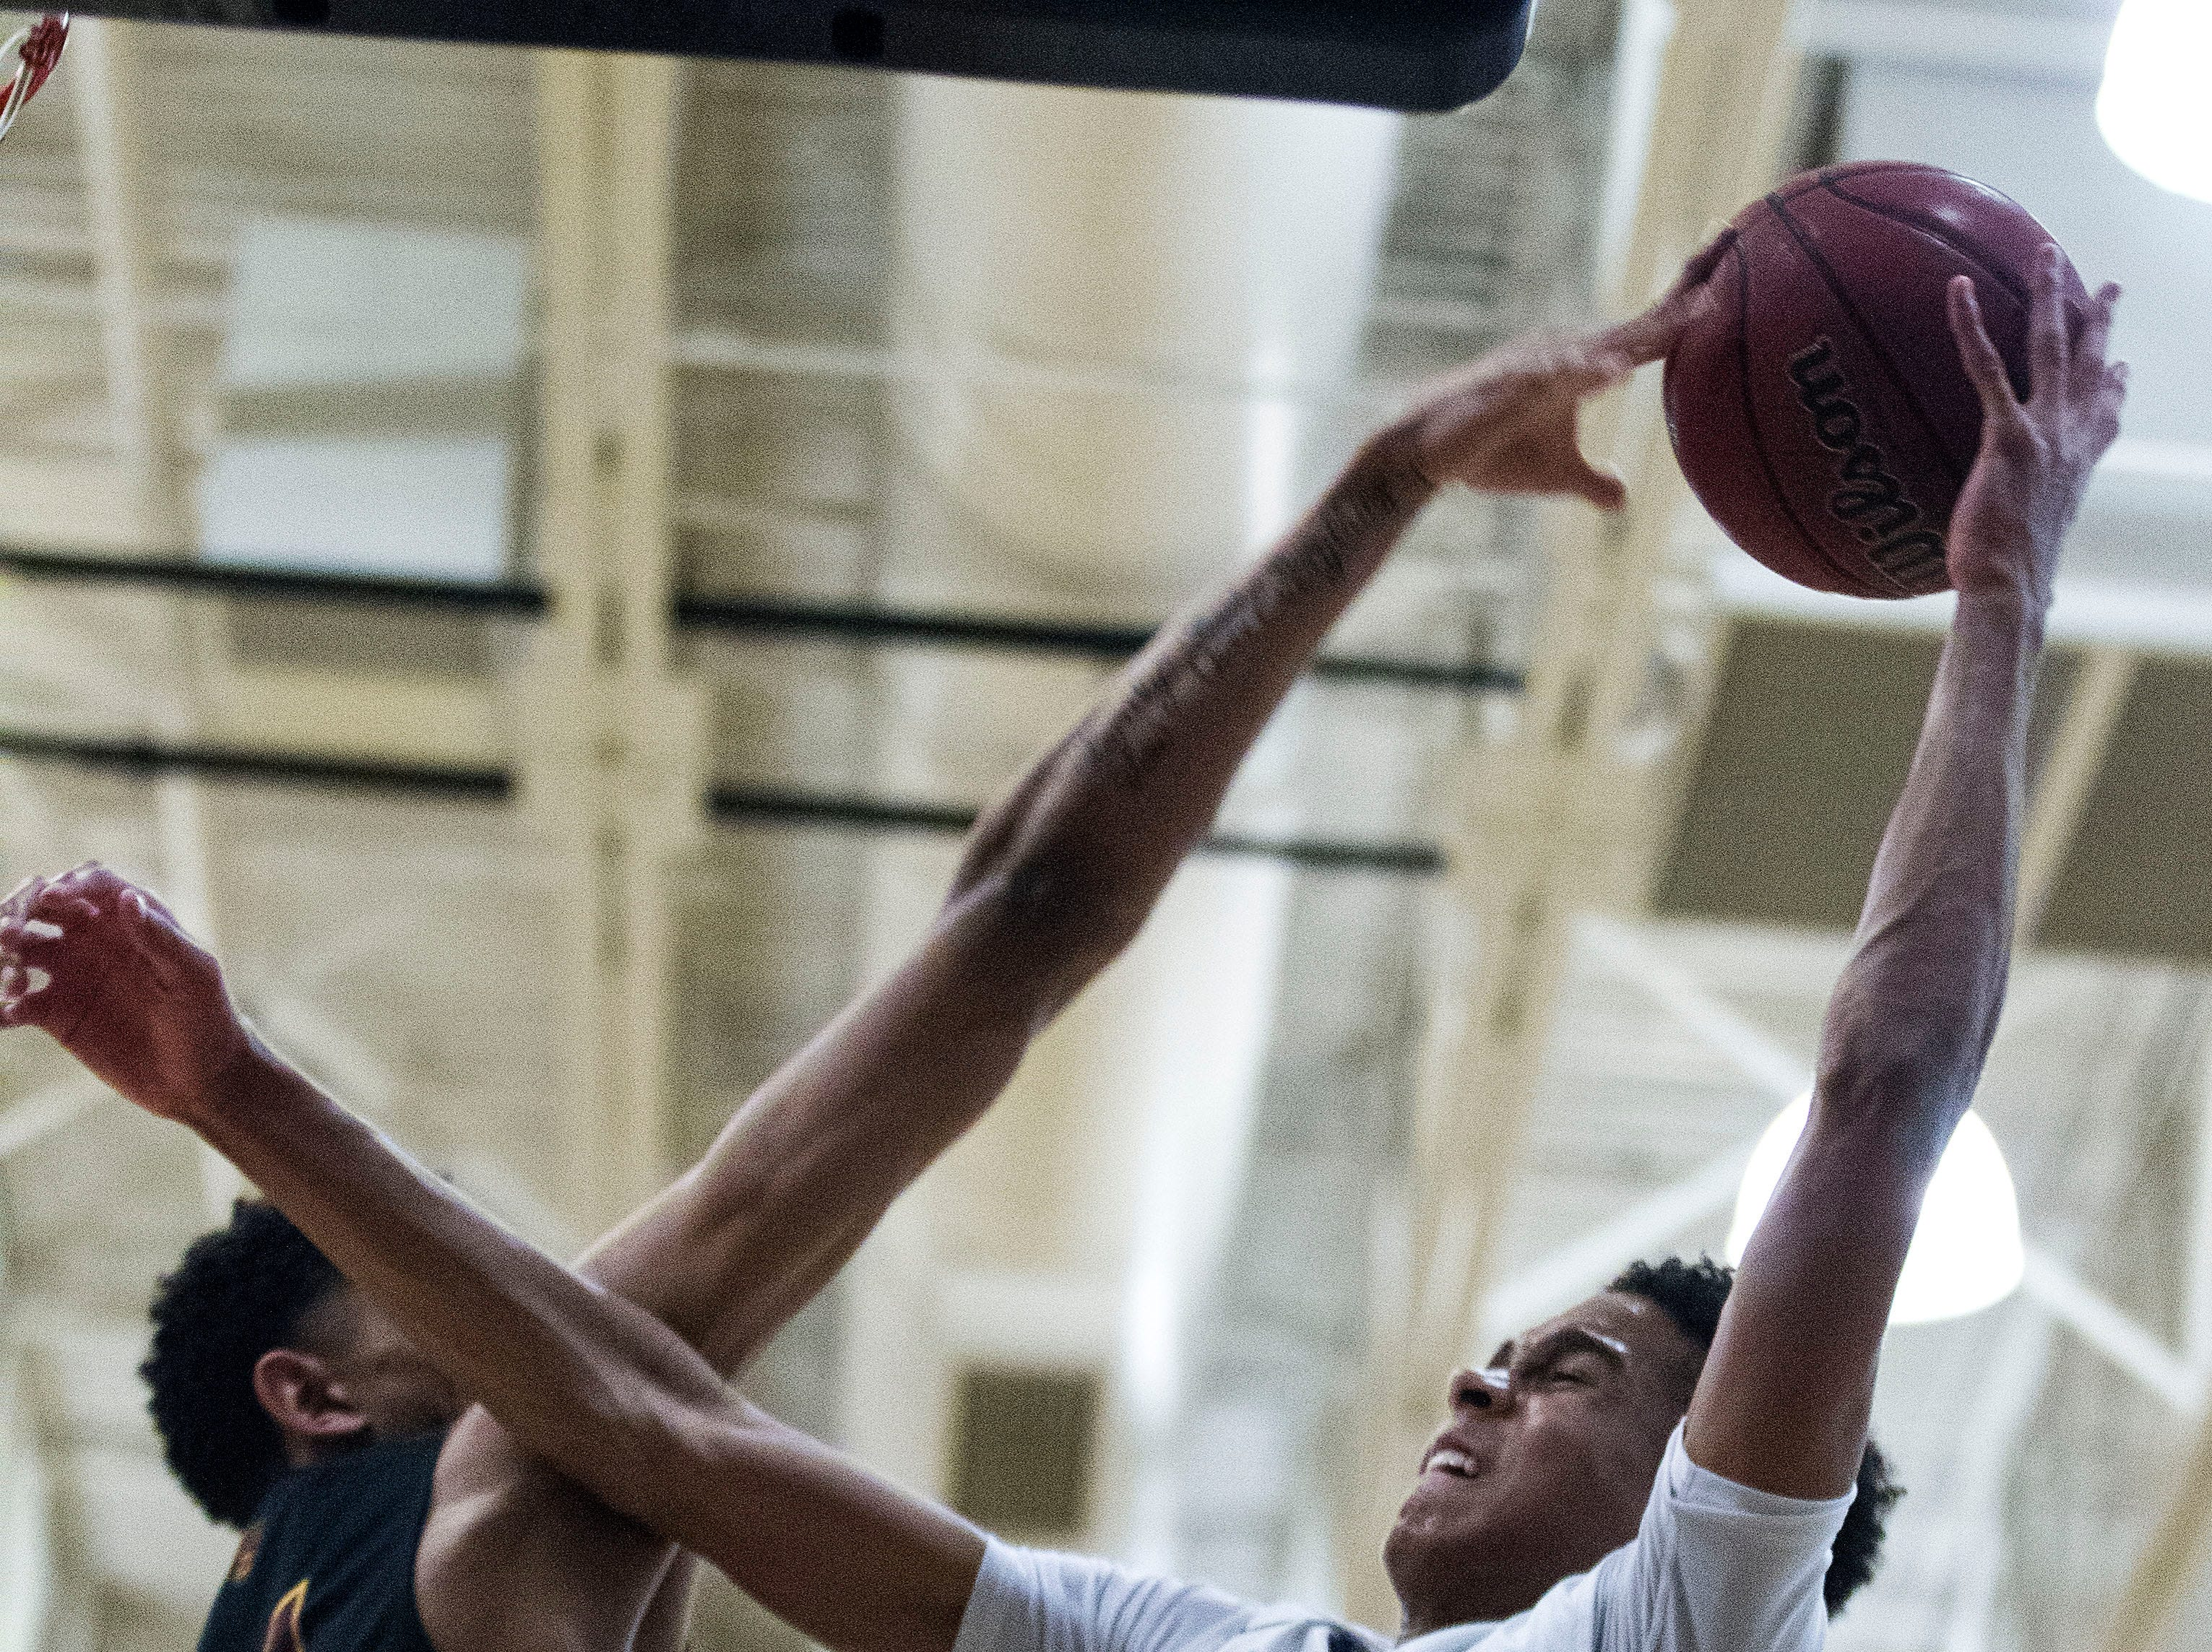 Mountain Pointe's Jalen Graham (24) rejects Desert Vista's Osasere Ighodaro (24) during in the first half of their game at Desert Vista High School in Phoenix, Friday, Jan.11, 2019.